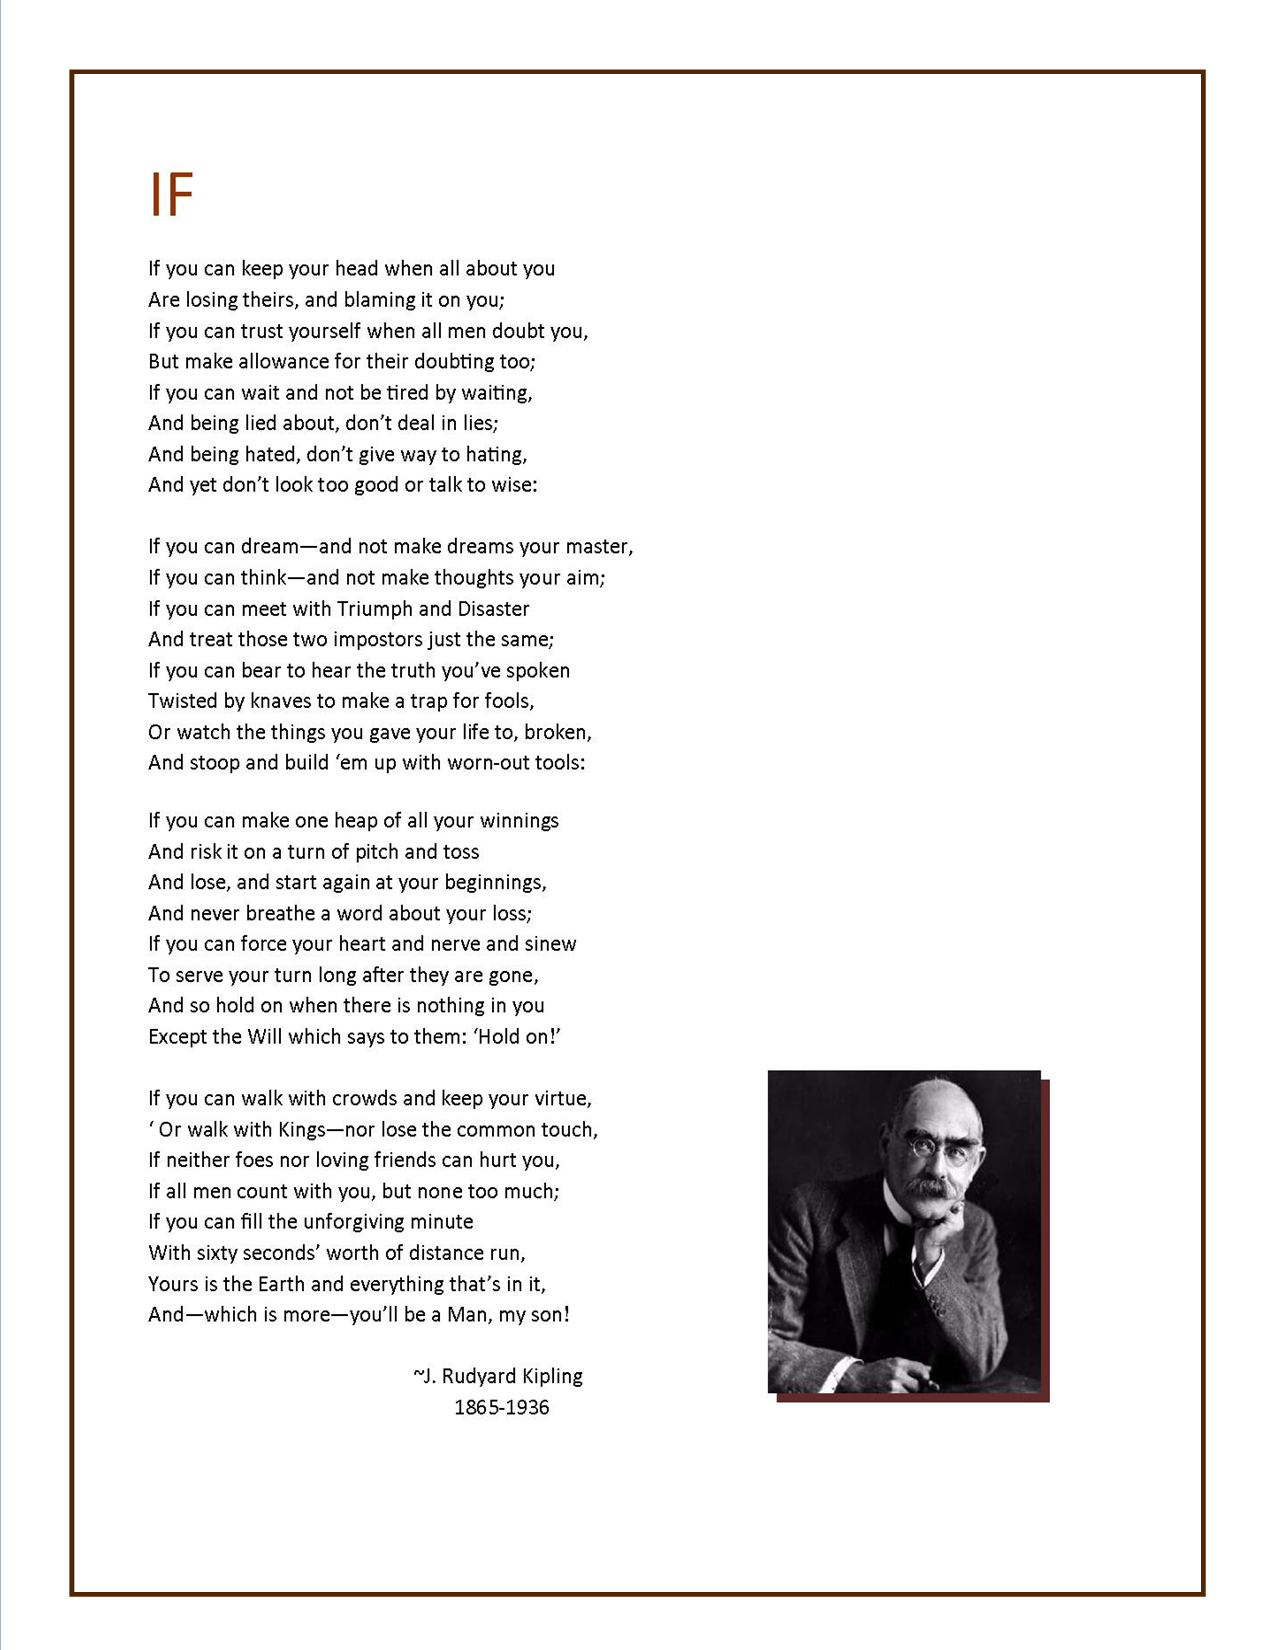 an analysis of if and the thousand man by rudyard kipling The white man's burden by rudyard kipling let me rephrase your analysis one more time just to make sure that you are not as thick a racist as mr.